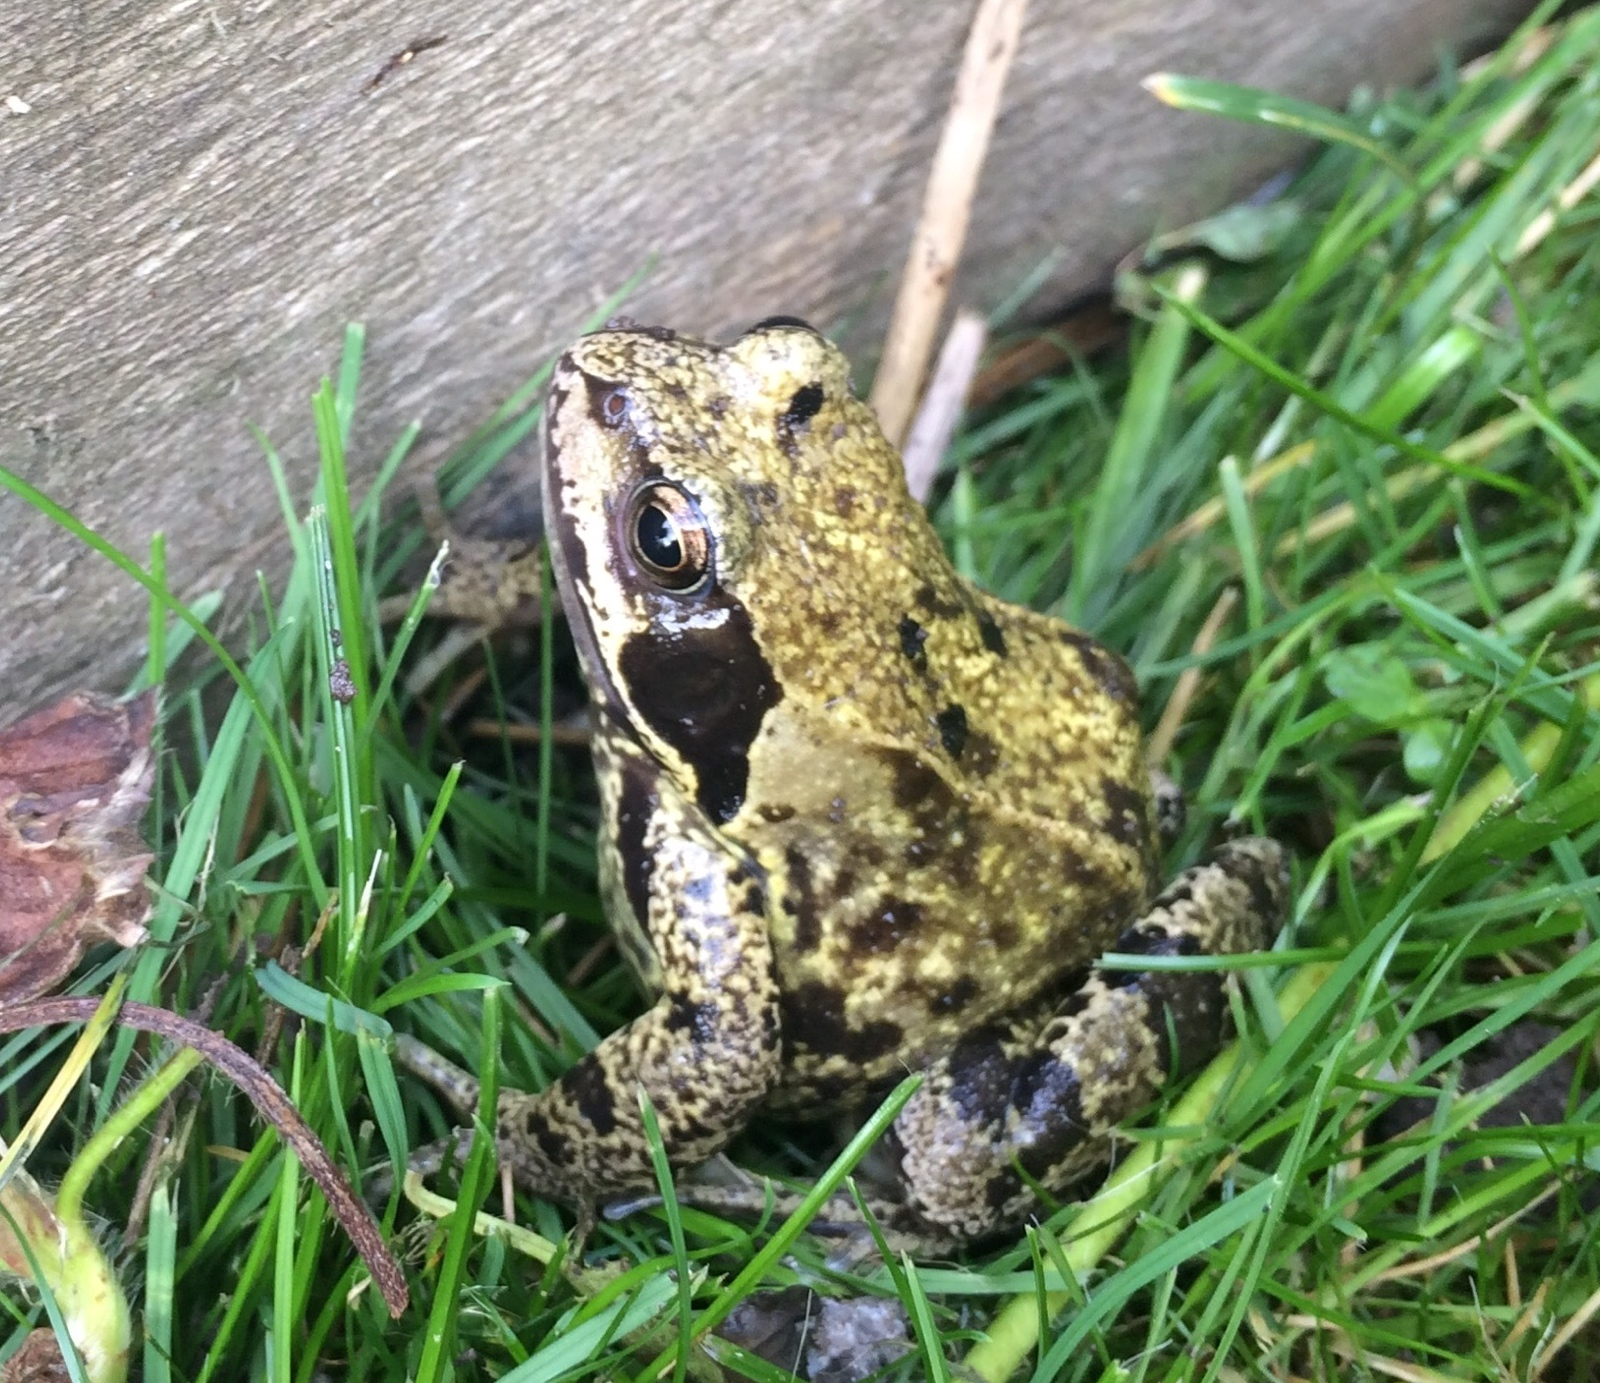 I often see frogs in the garden